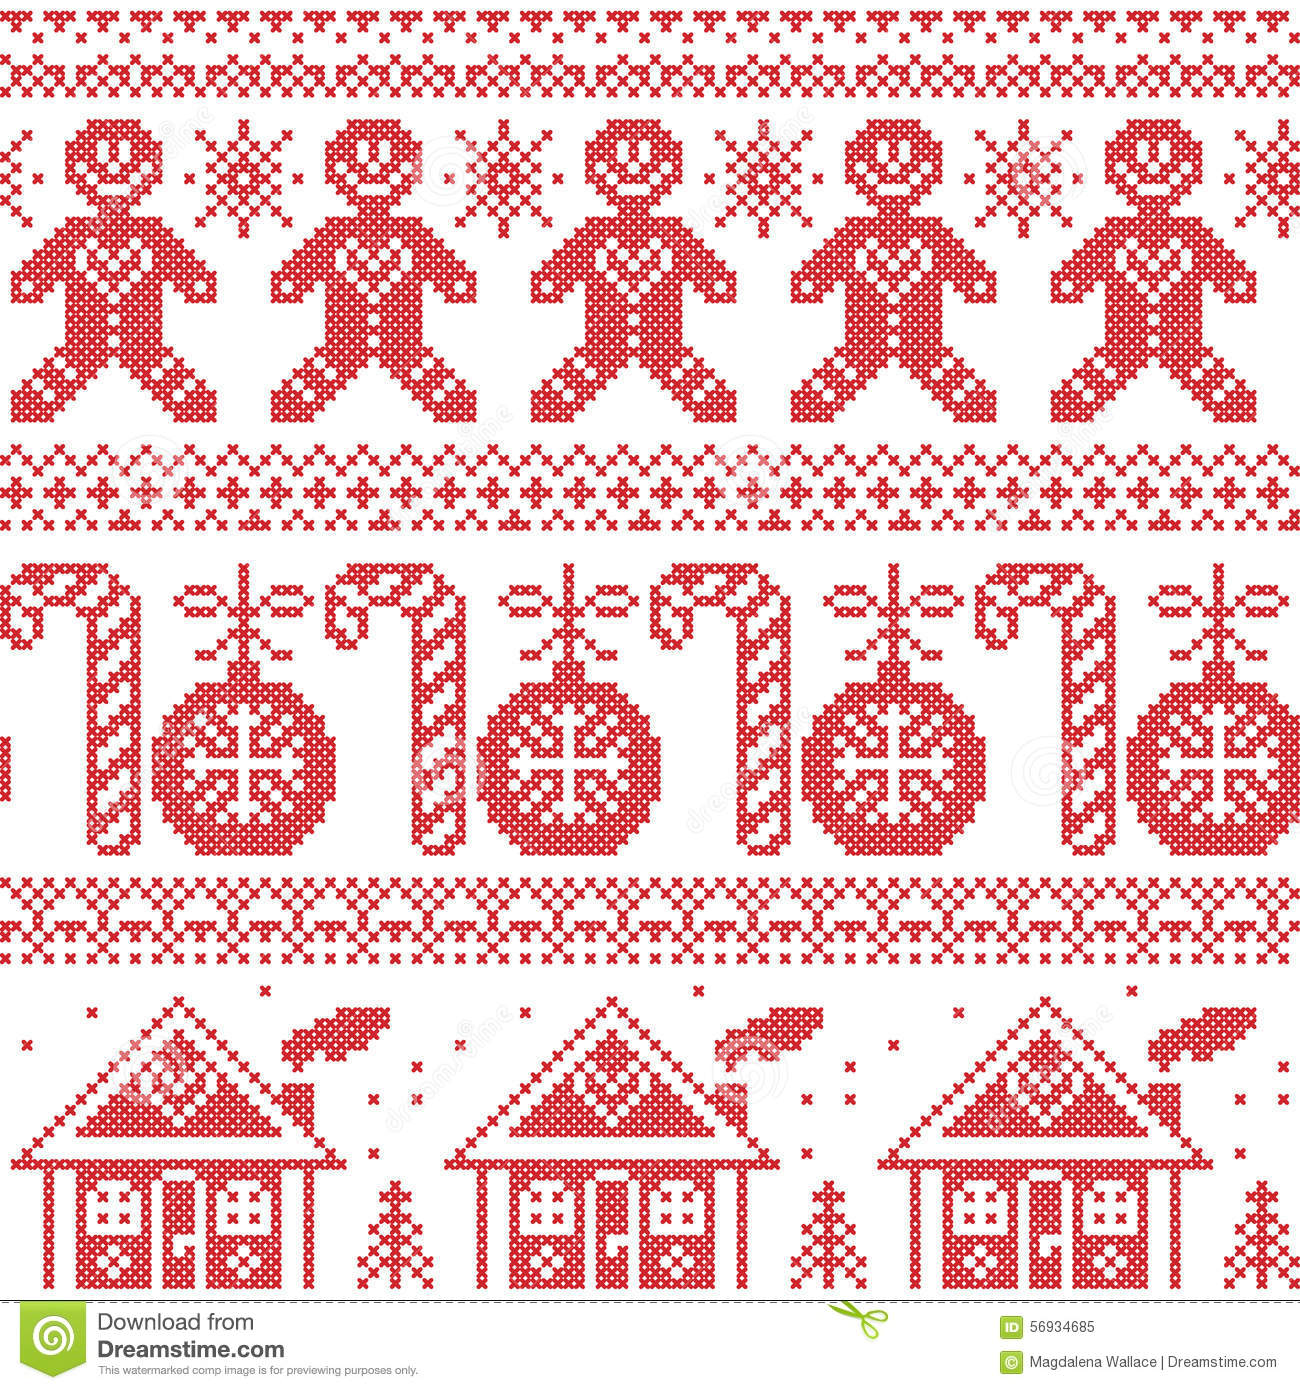 Scandinavian Nordic seamless pattern with ginger bread man, candy, ginger house, bauble, xmas trees in red cross stitch